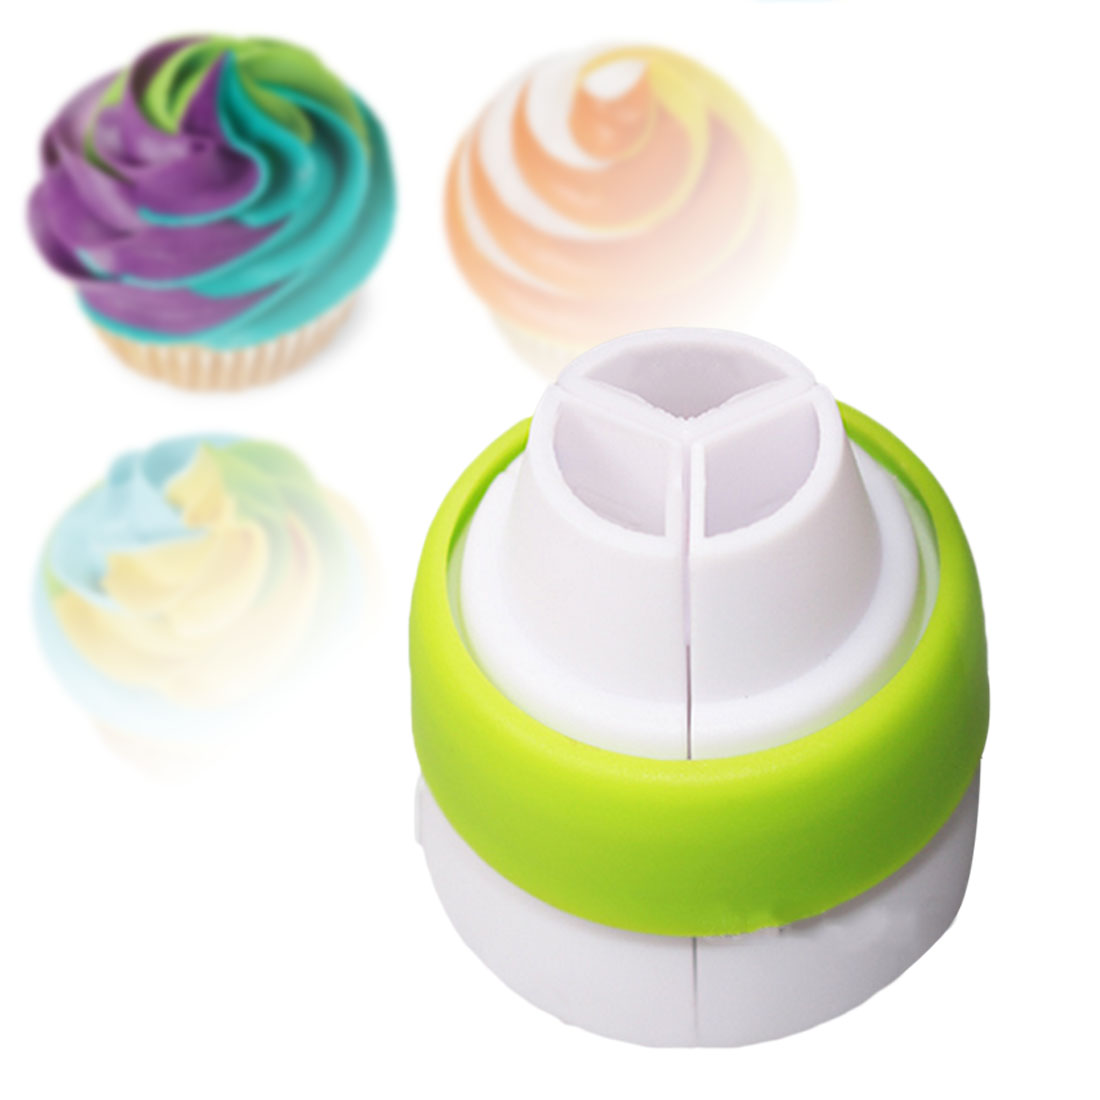 1Pc Icing Piping Bag Nozzle Converter Tri color Cream Coupler Cake Decorating Tools For Cupcake Fondant Cookie|Cake Molds| - AliExpress